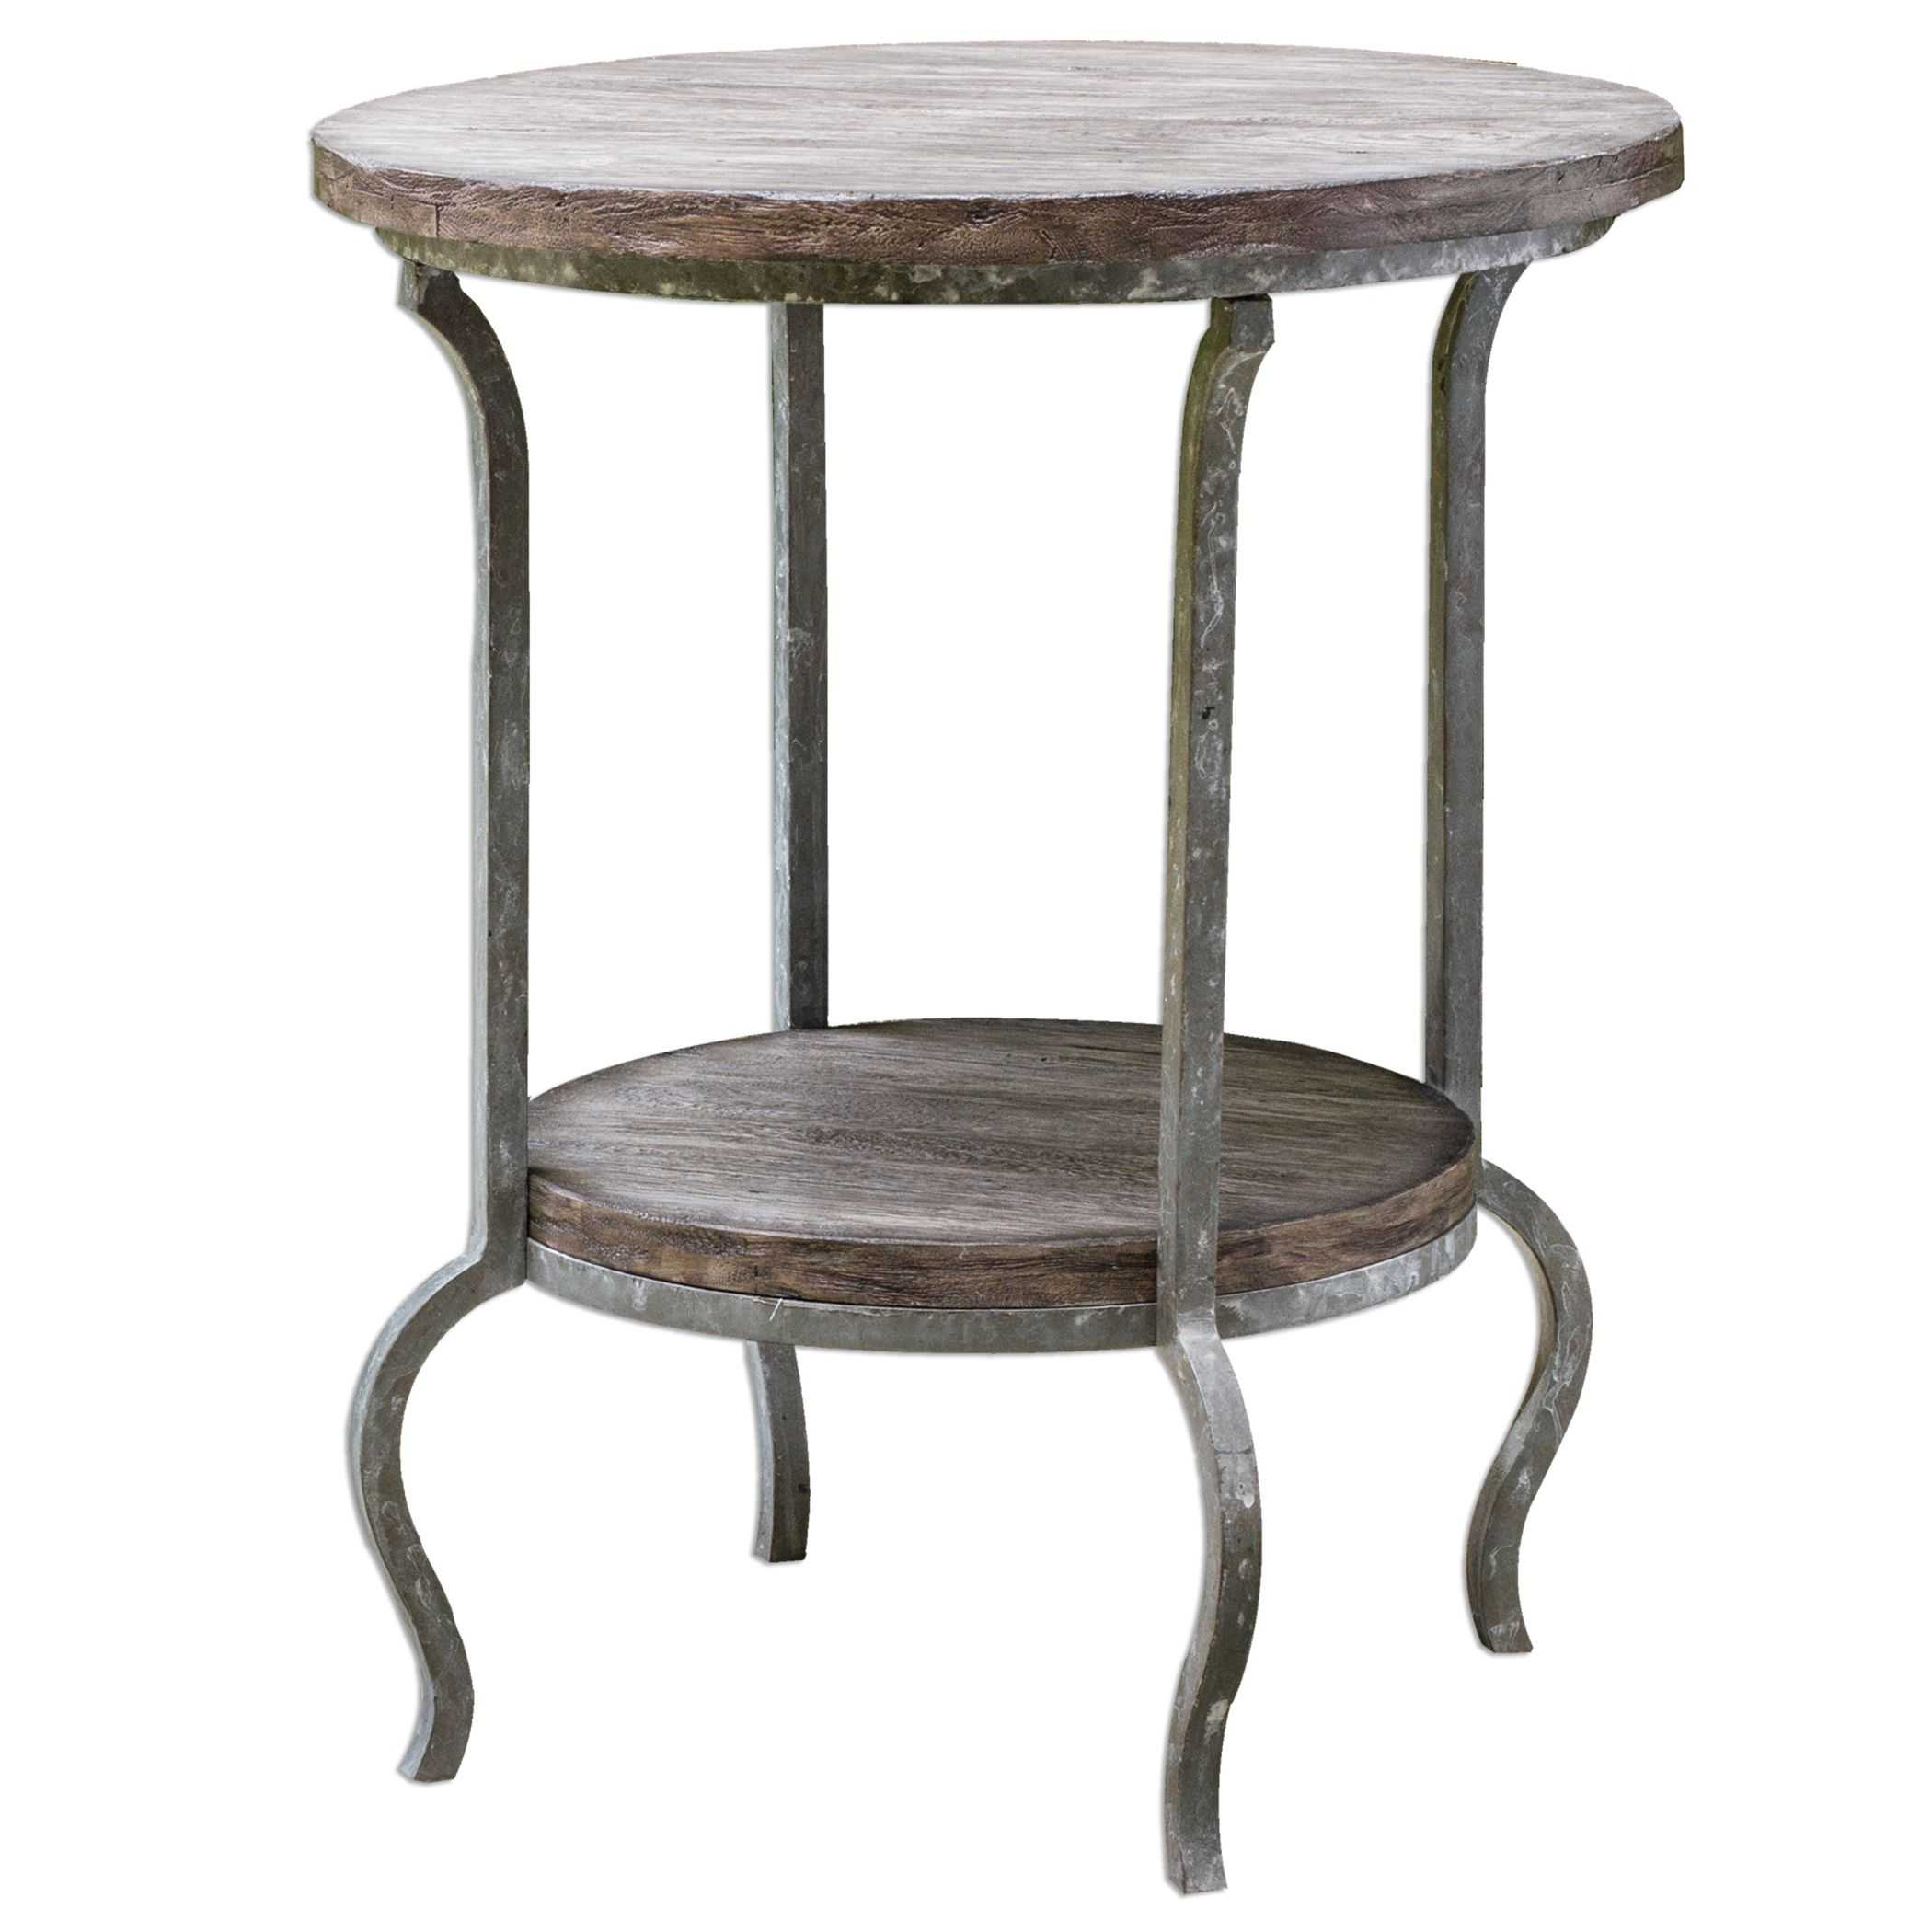 uttermost marcin round accent table nesting tables contemporary outdoor furniture stacked crystal lamp wood occasional black kitchen and chairs pier imports lamps half moon ikea